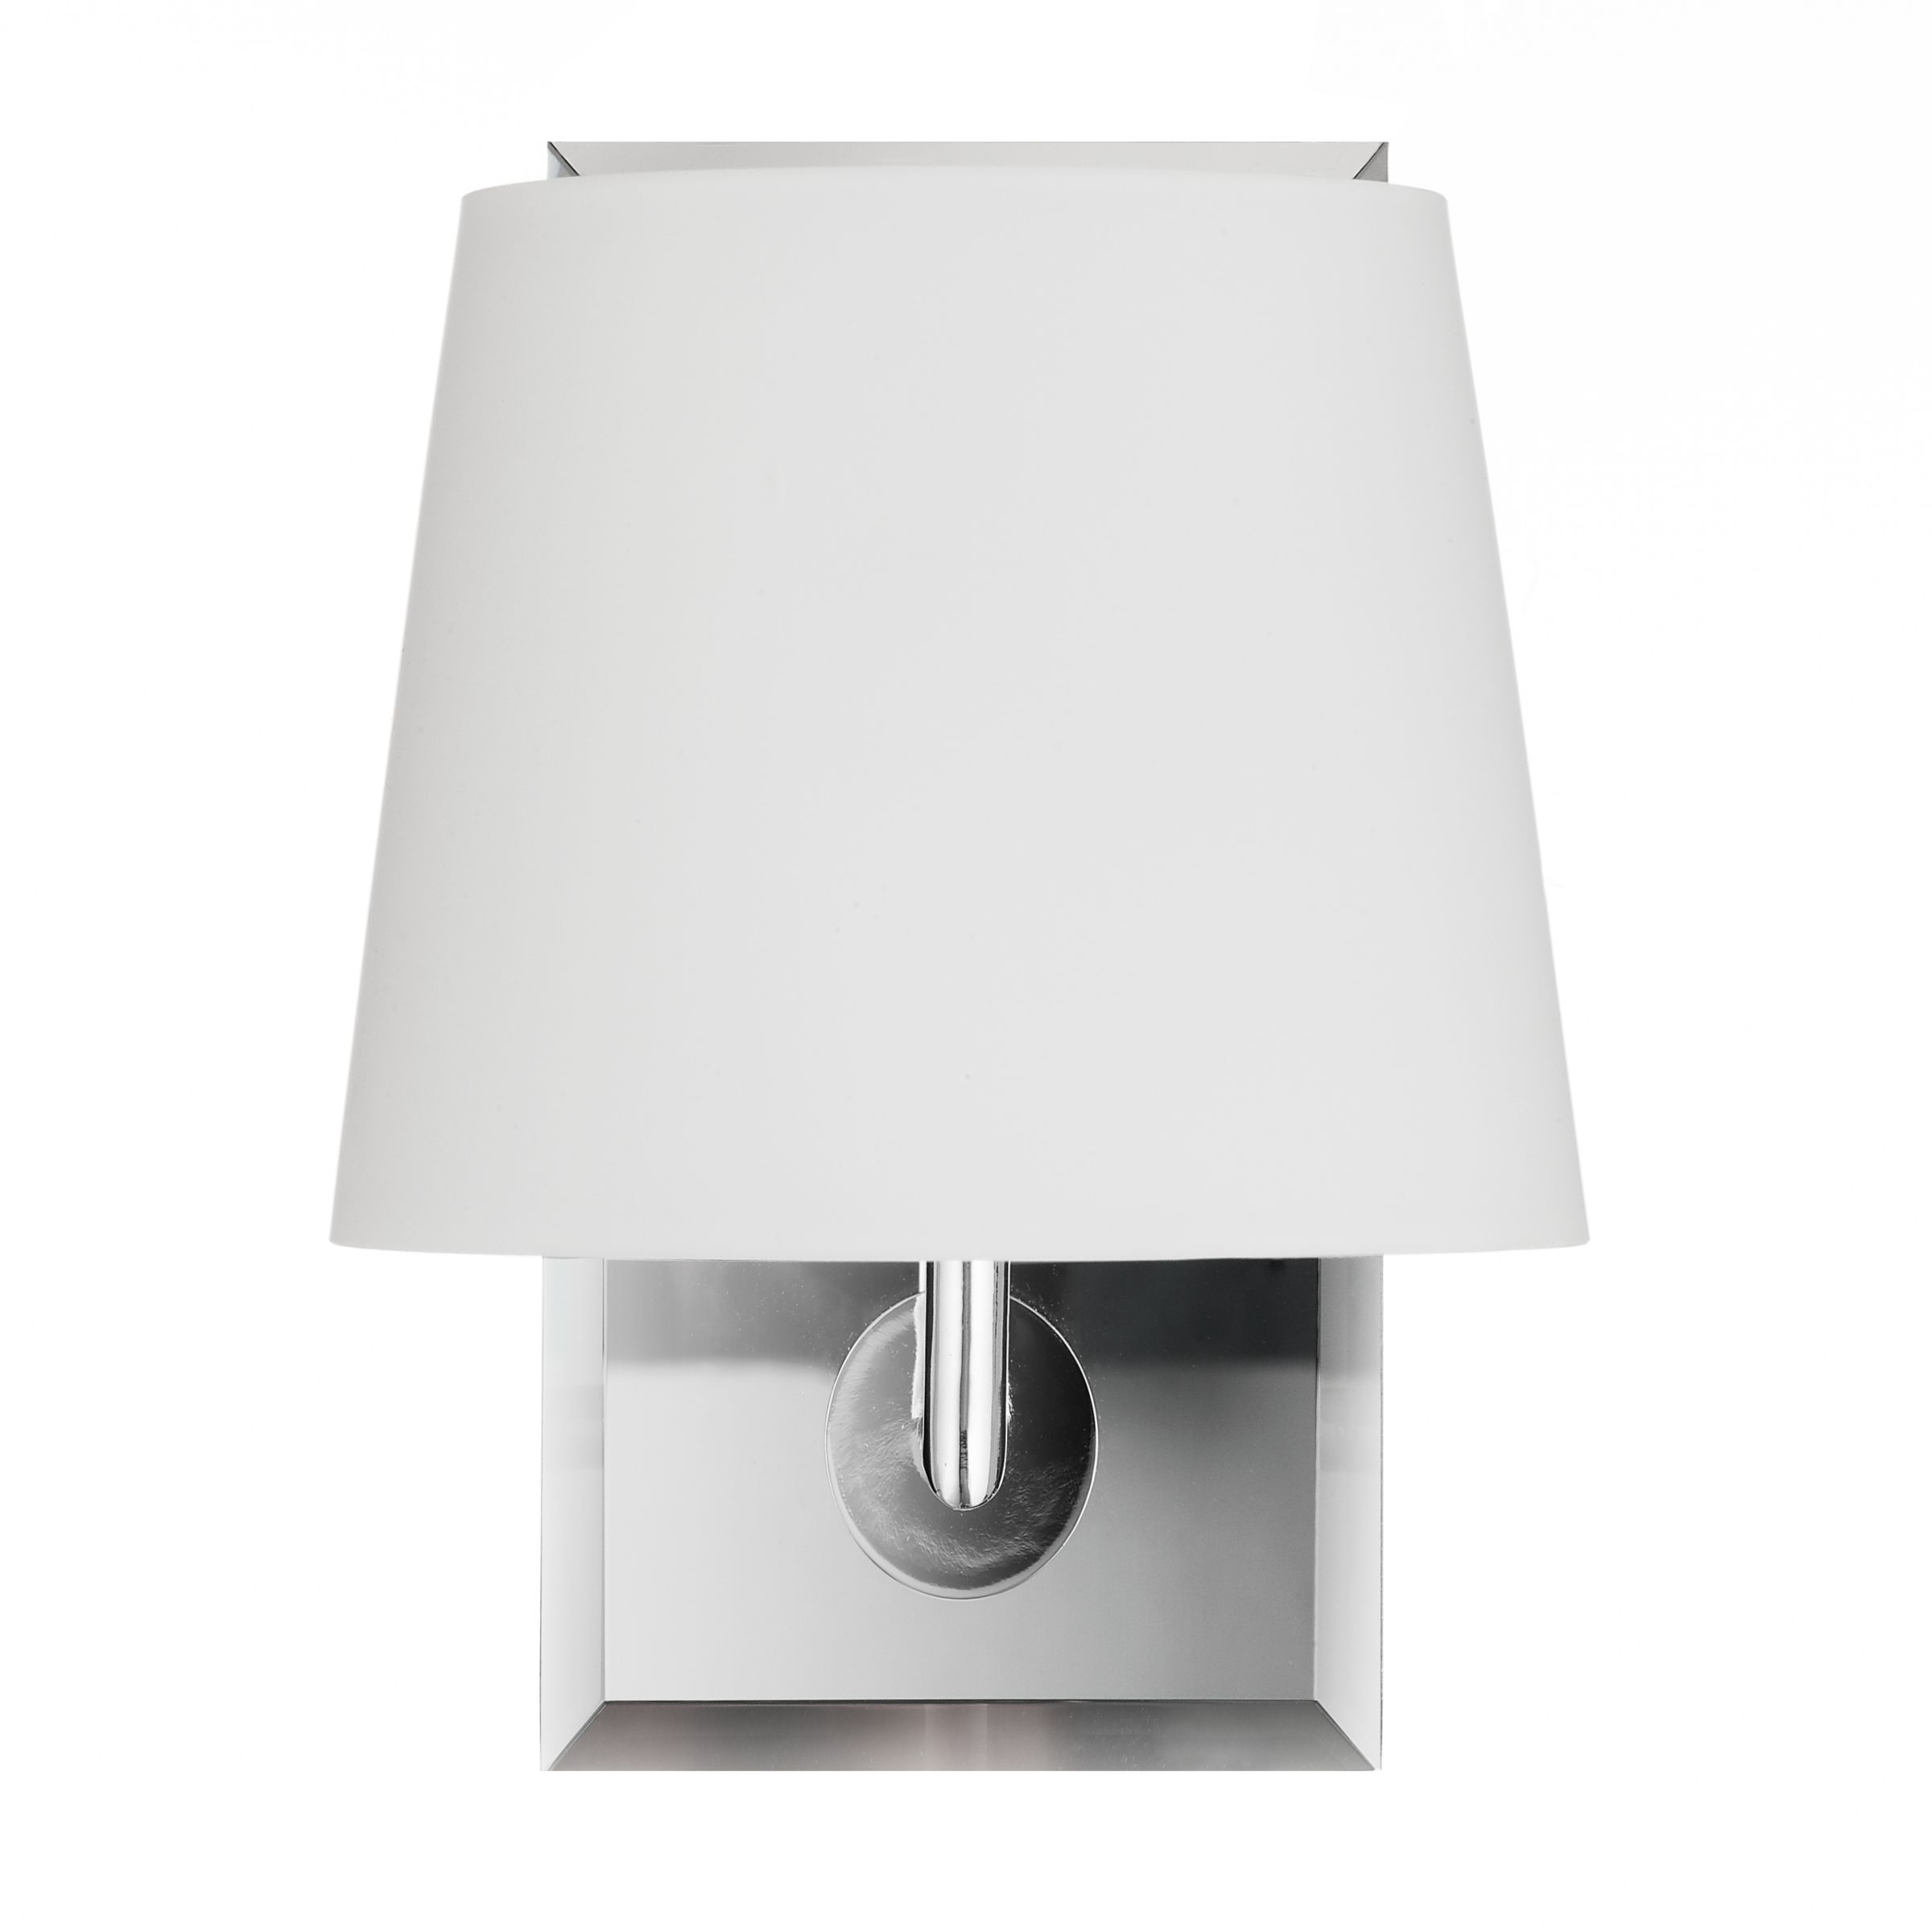 Amalfi Wall Light John Lewis : john lewis wall lights